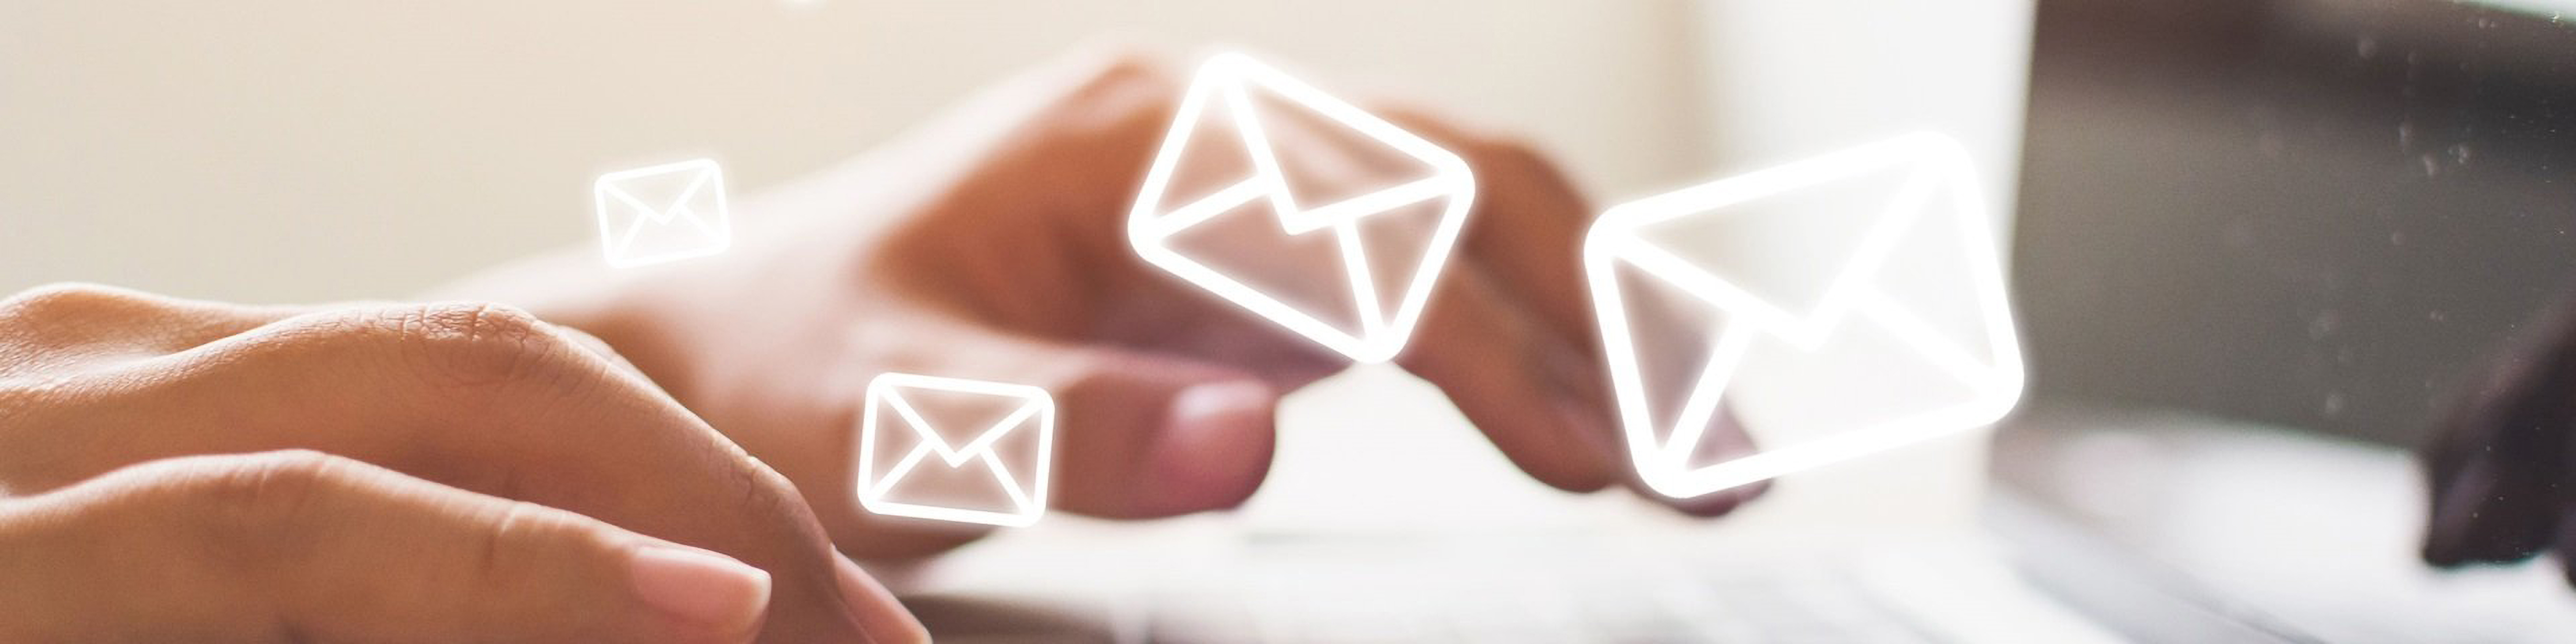 I struggle to manage my emails: what can I do?